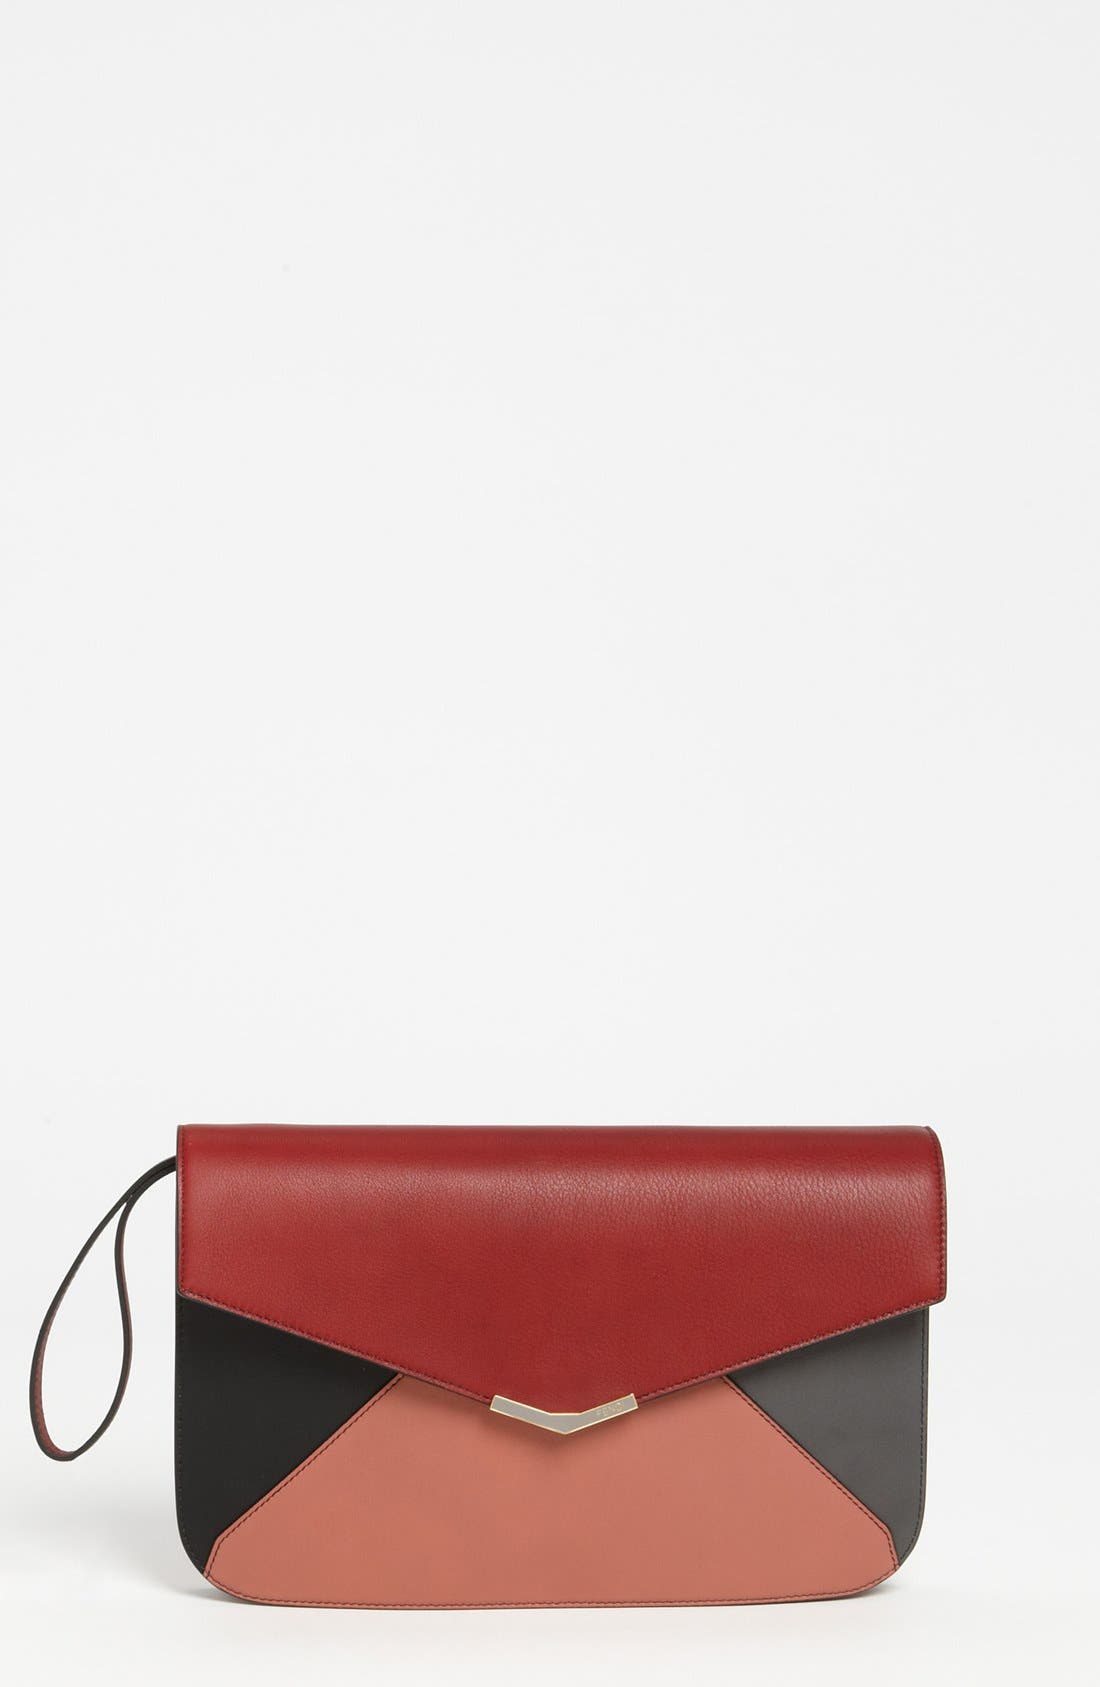 Alternate Image 1 Selected - Fendi '2Jours Colorblock' Leather Clutch